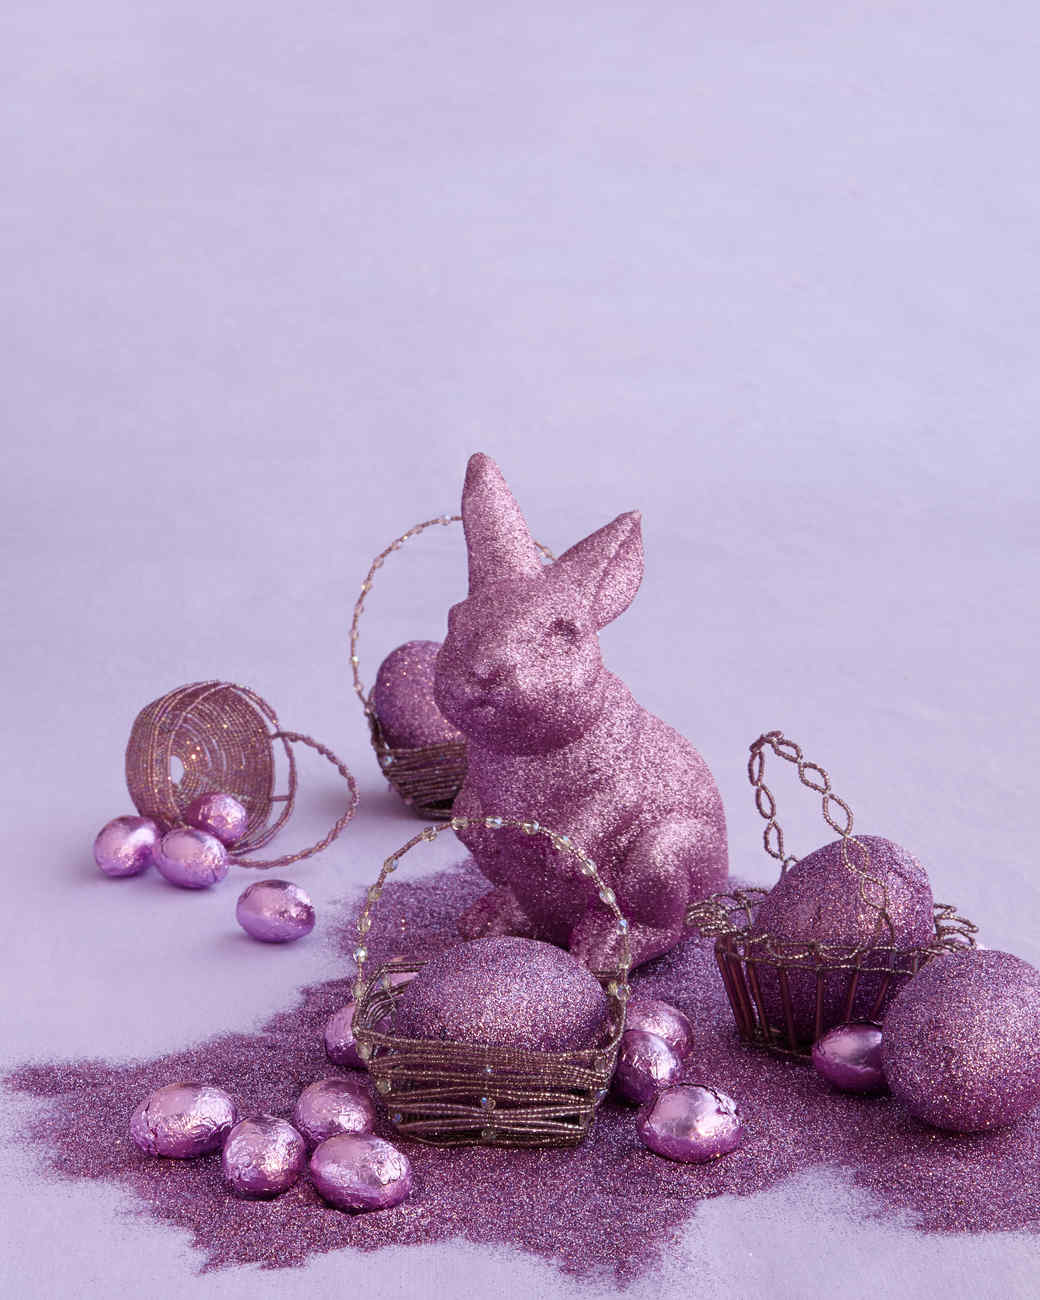 easter-centerpiece-purple-1880-d111156-0414-comp.jpg